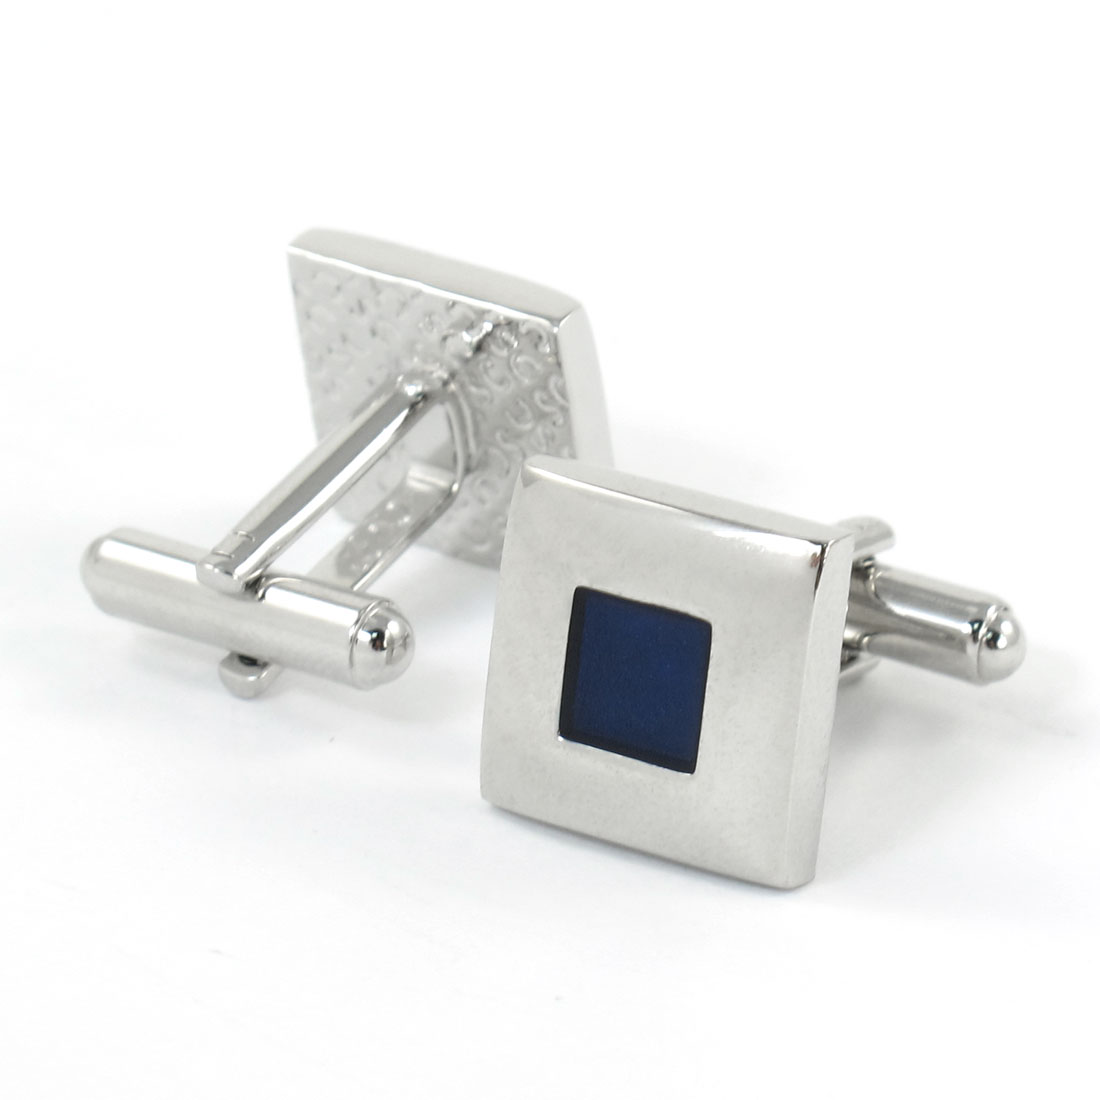 Pair Men Square Shaped Dark Blue Silver Tone Tuxedo Shirt Decor Cufflinks